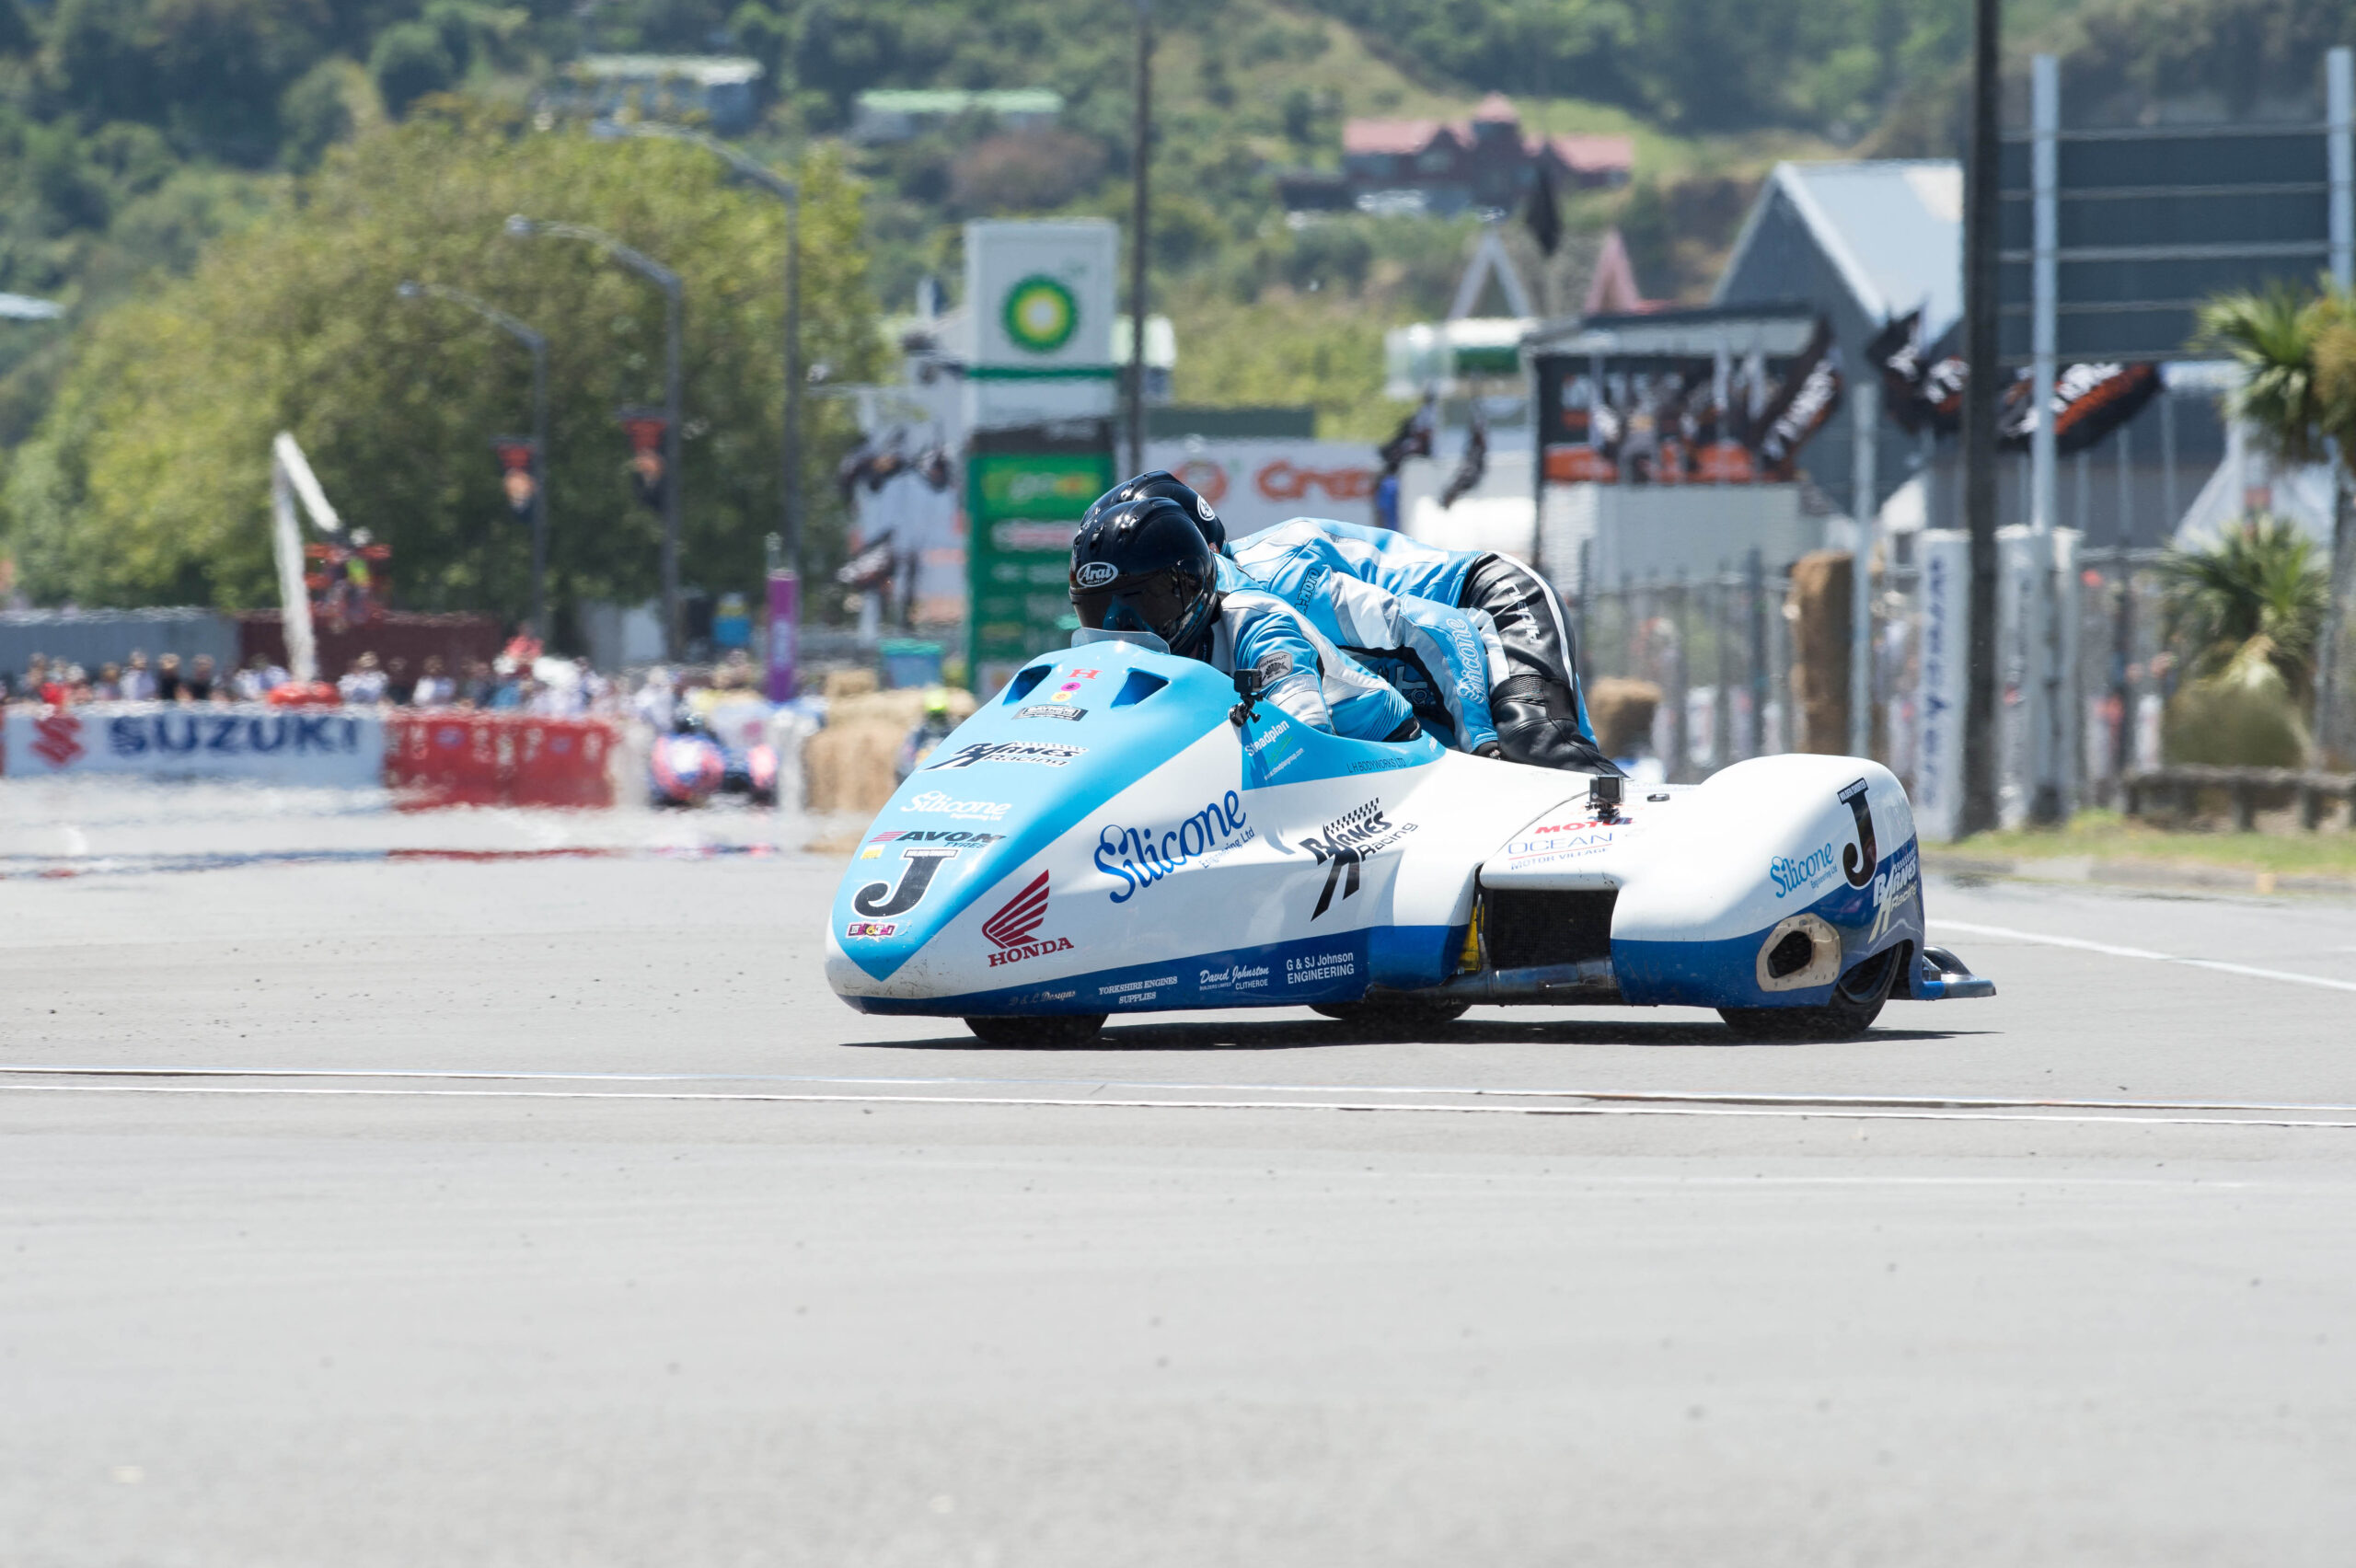 Wanganui – John Holden Marks Wanganui Debut With Series Of Second Place Finishes